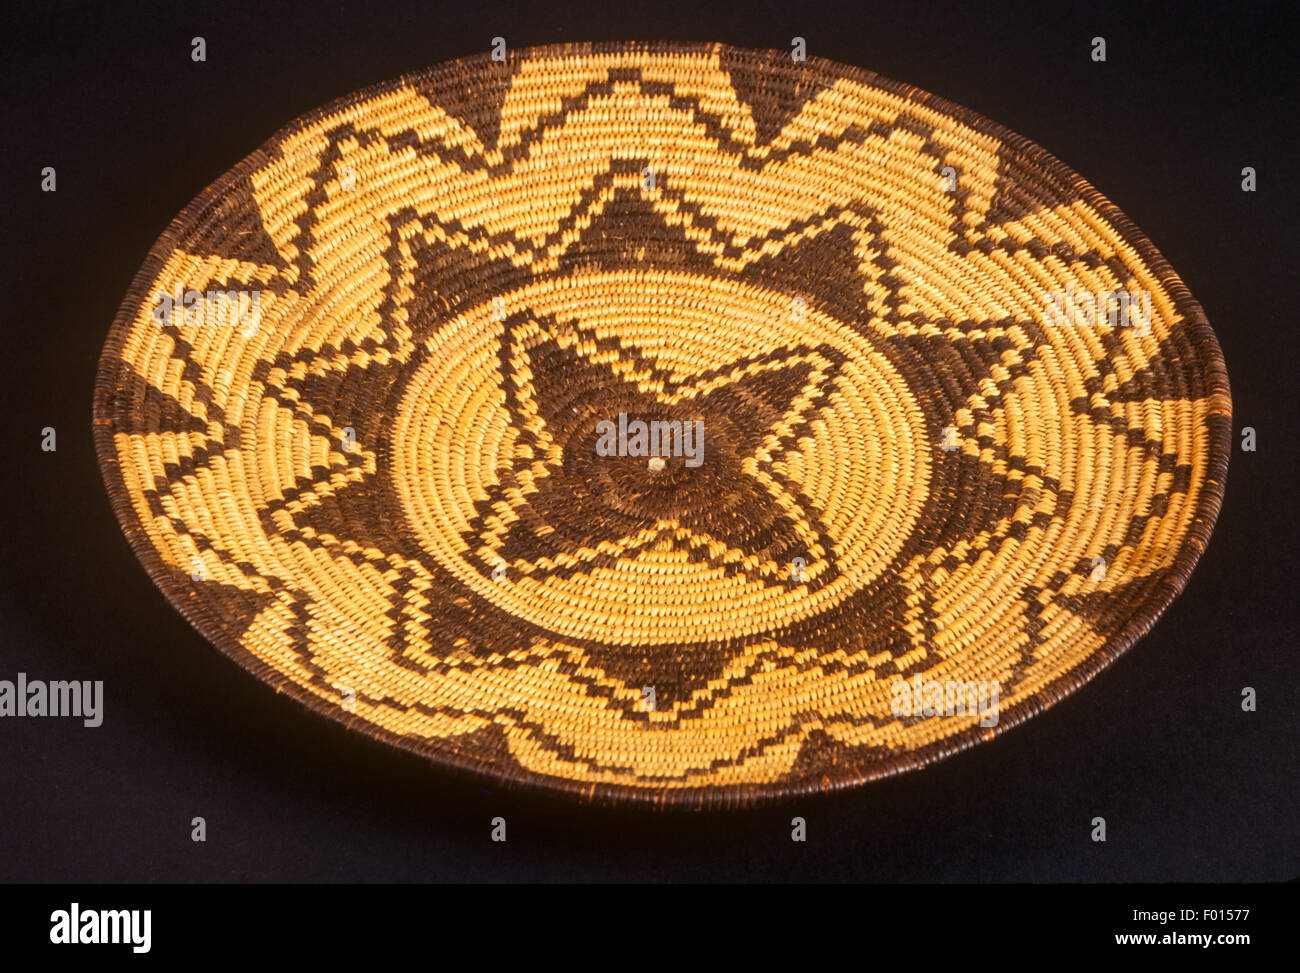 Western Apache Indian Basket Museum Of Northern Arizona Flagstaff